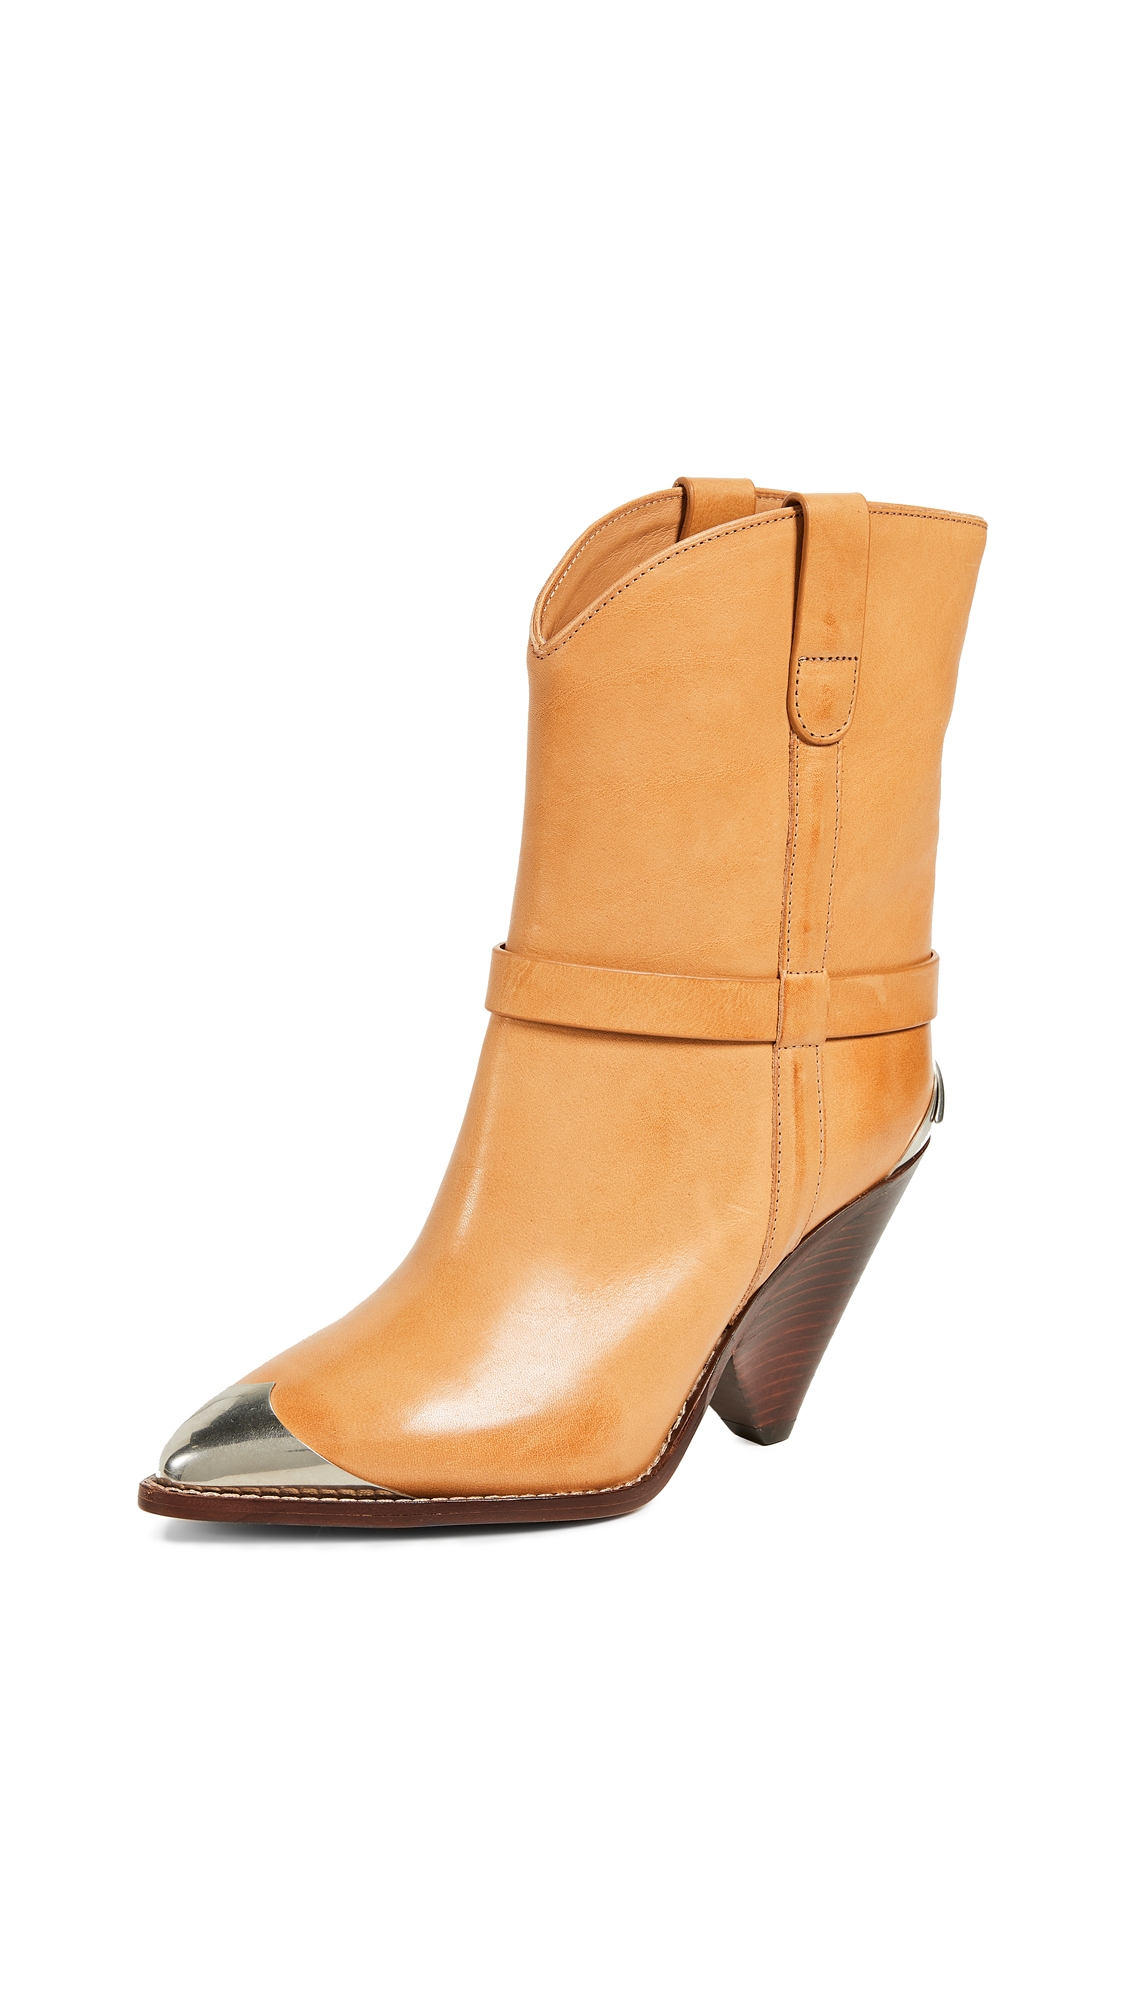 Isabel Marant Lamsy Boots - Natural